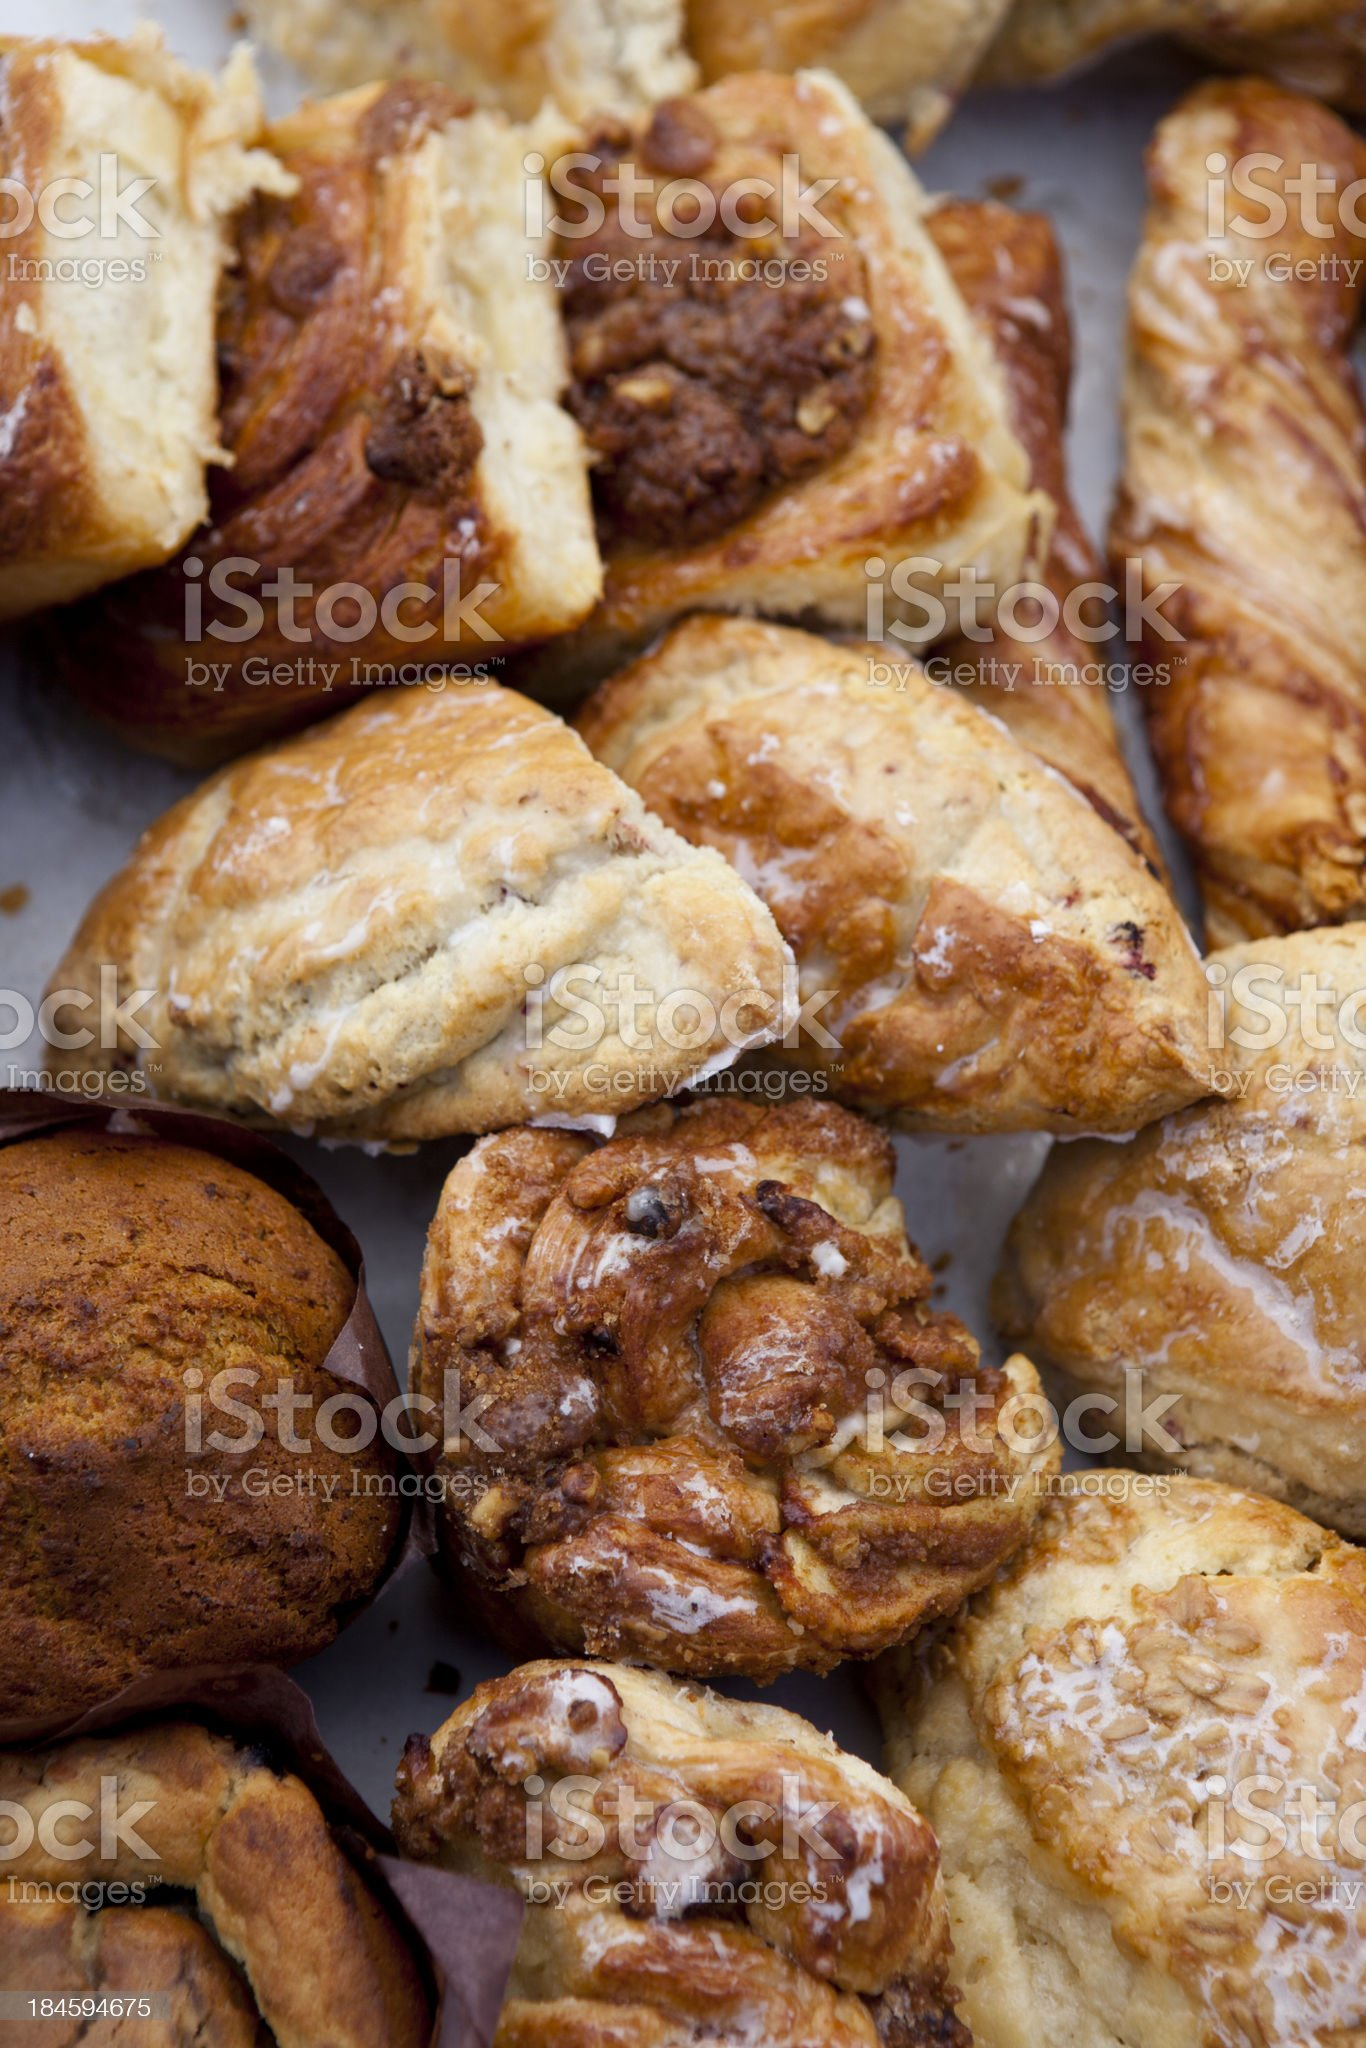 Farmers Market fresh breads and pastries, Aspen Colorado royalty-free stock photo